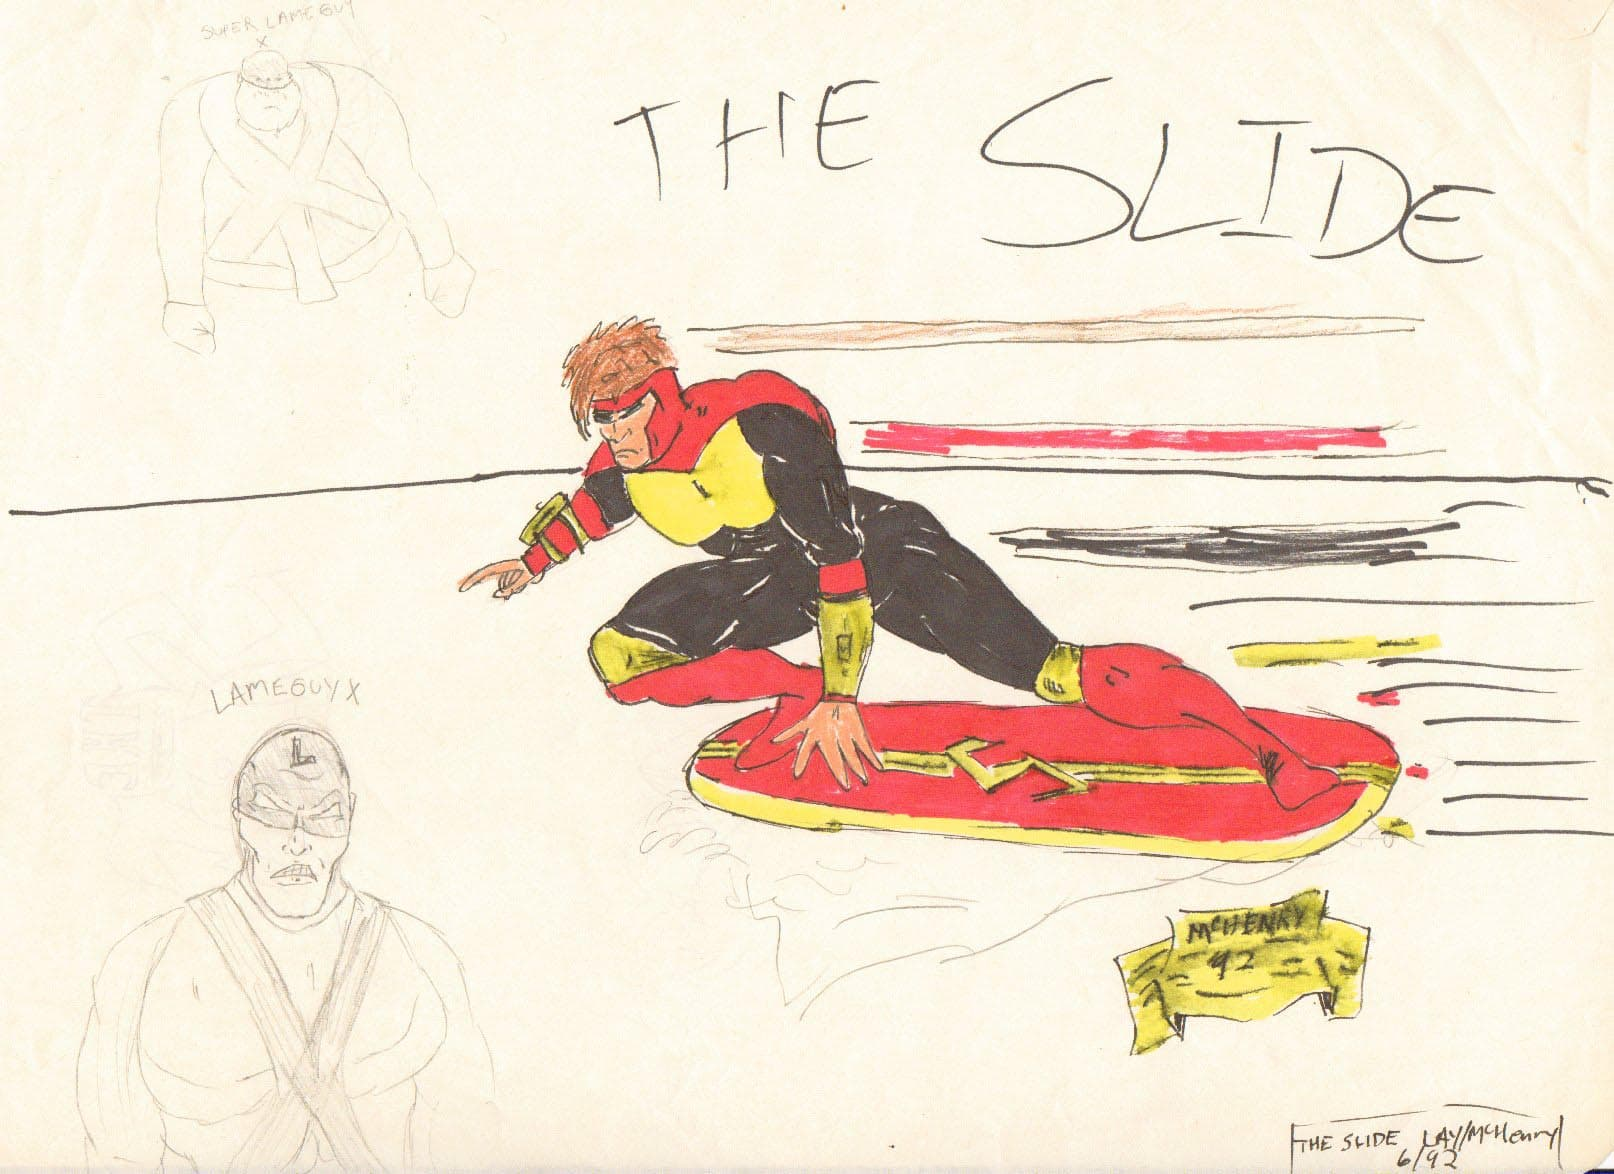 The Slide (Lay/McHenry)